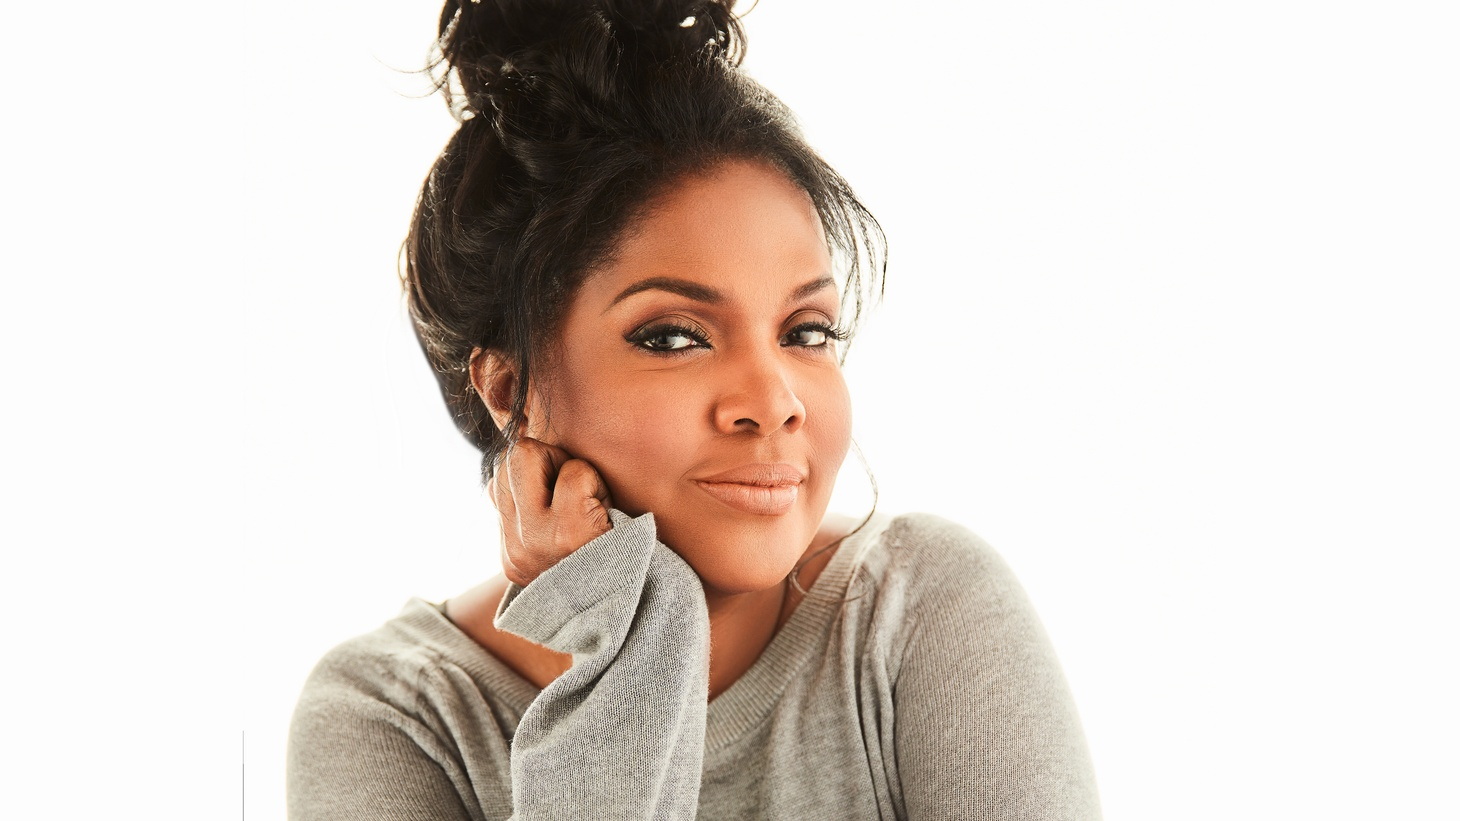 Ten-time Grammy winner and multi-platinum-selling artist CecC Winans has just released her most adventurous album to date.